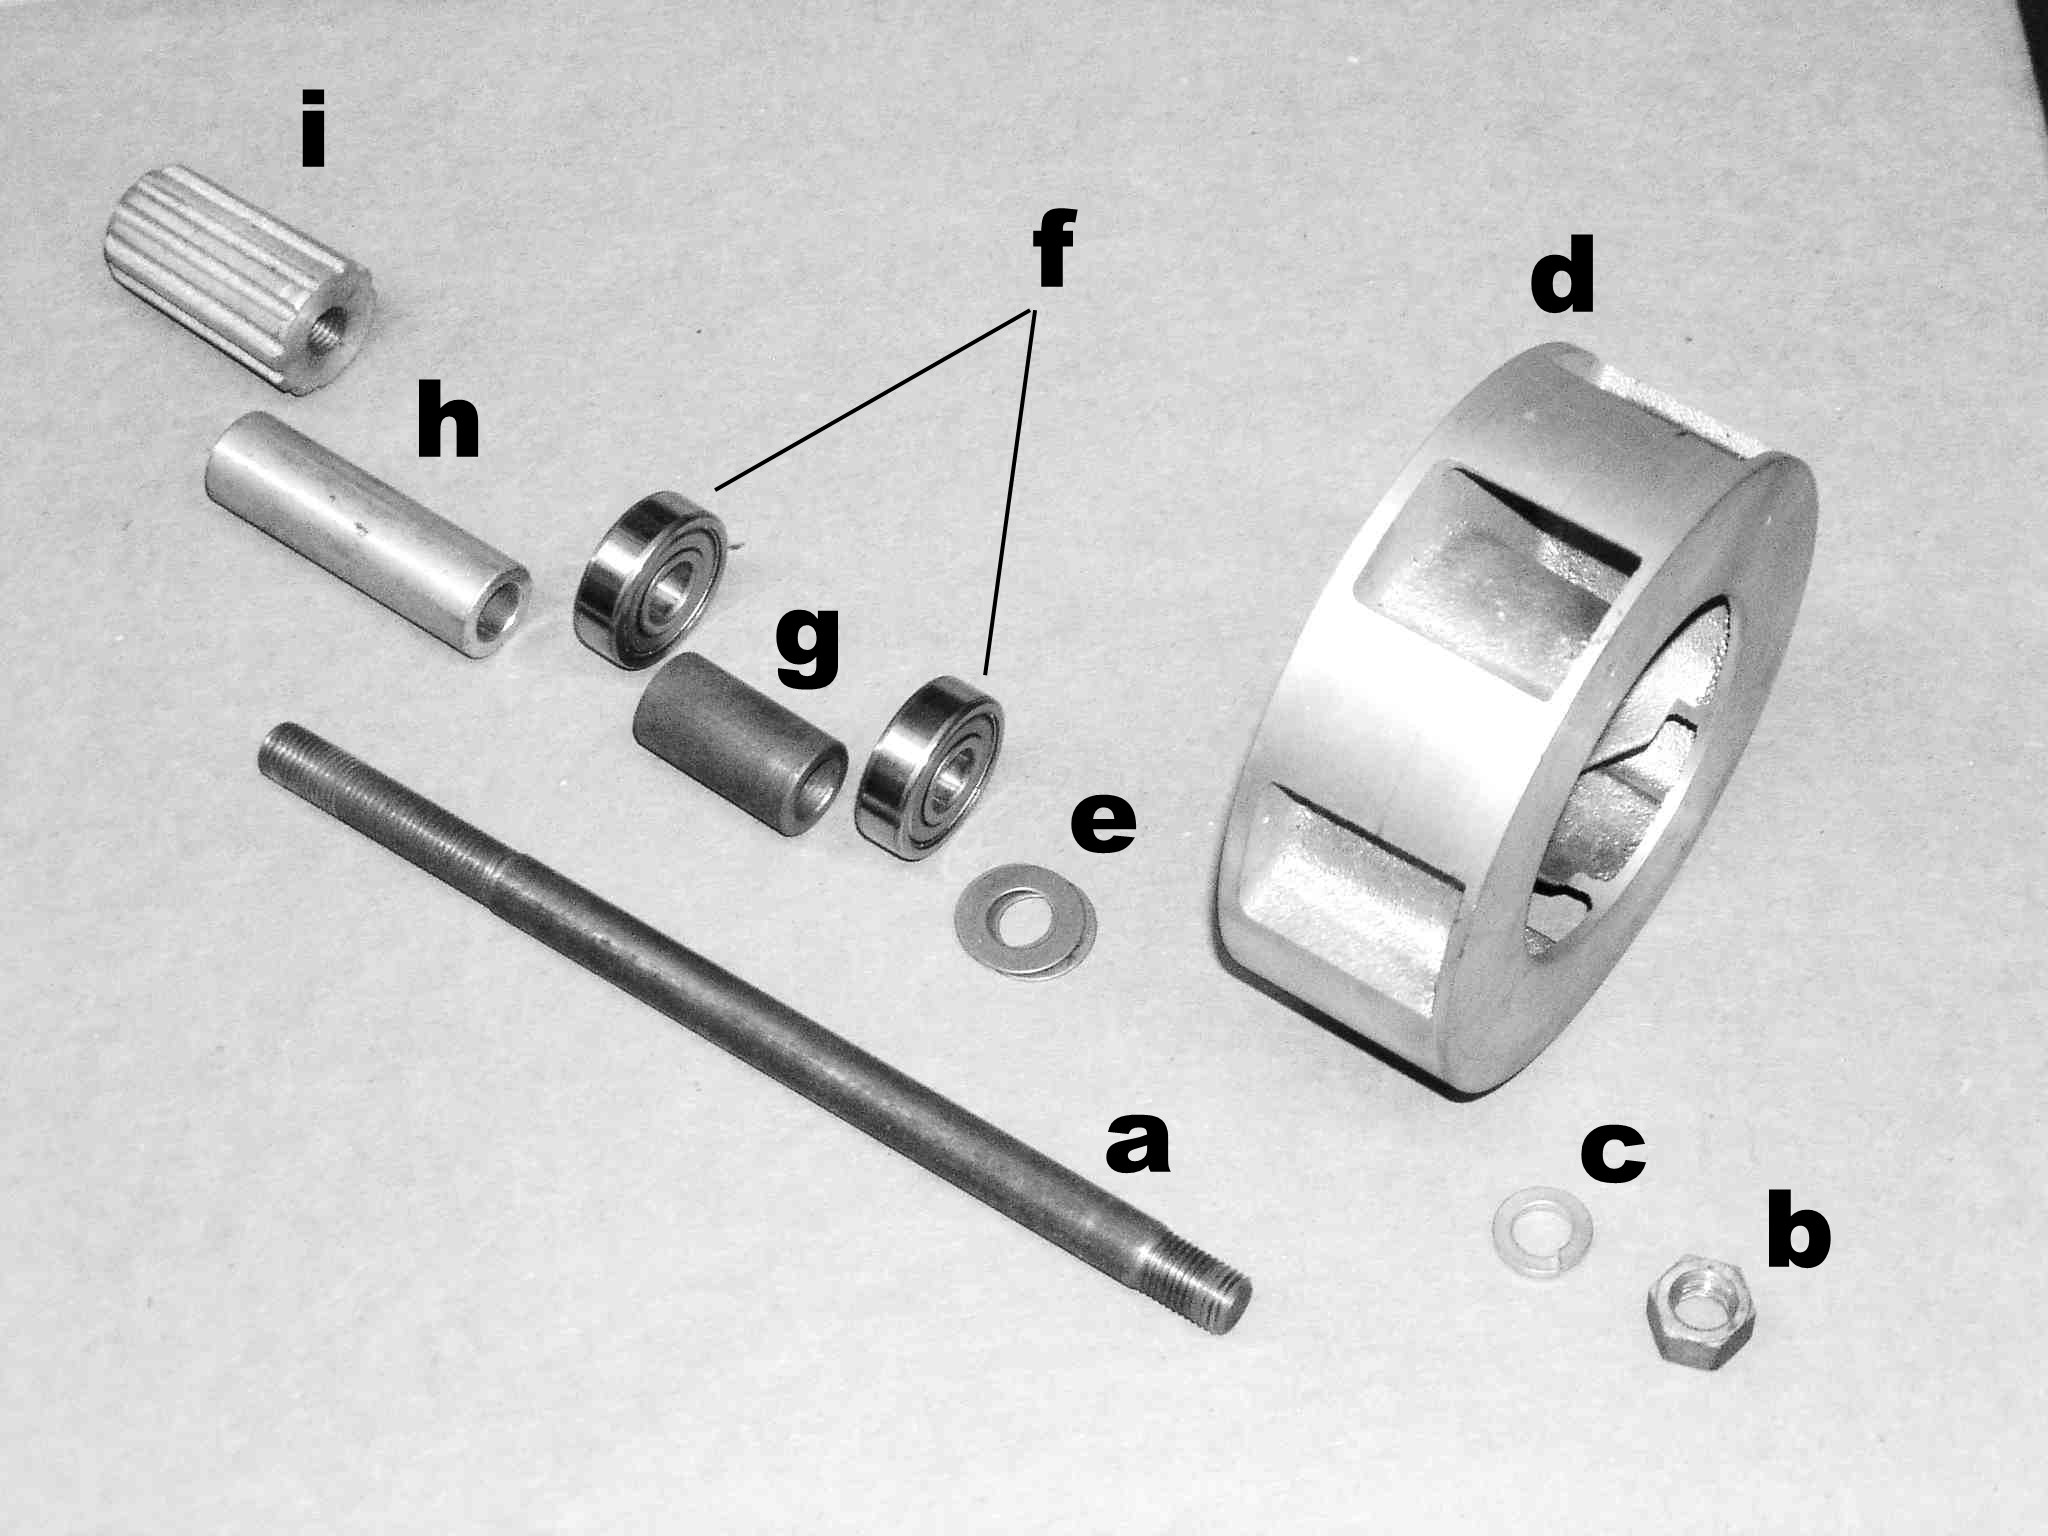 B&M Model MC Friction Drive Siren, exploded view. These sirens were mounted by some police departments on Moto Guzzi V700, V7 Special, Ambassador, 850 GT, 850 GT California, Eldorado, and 850 California Police motorcycles.